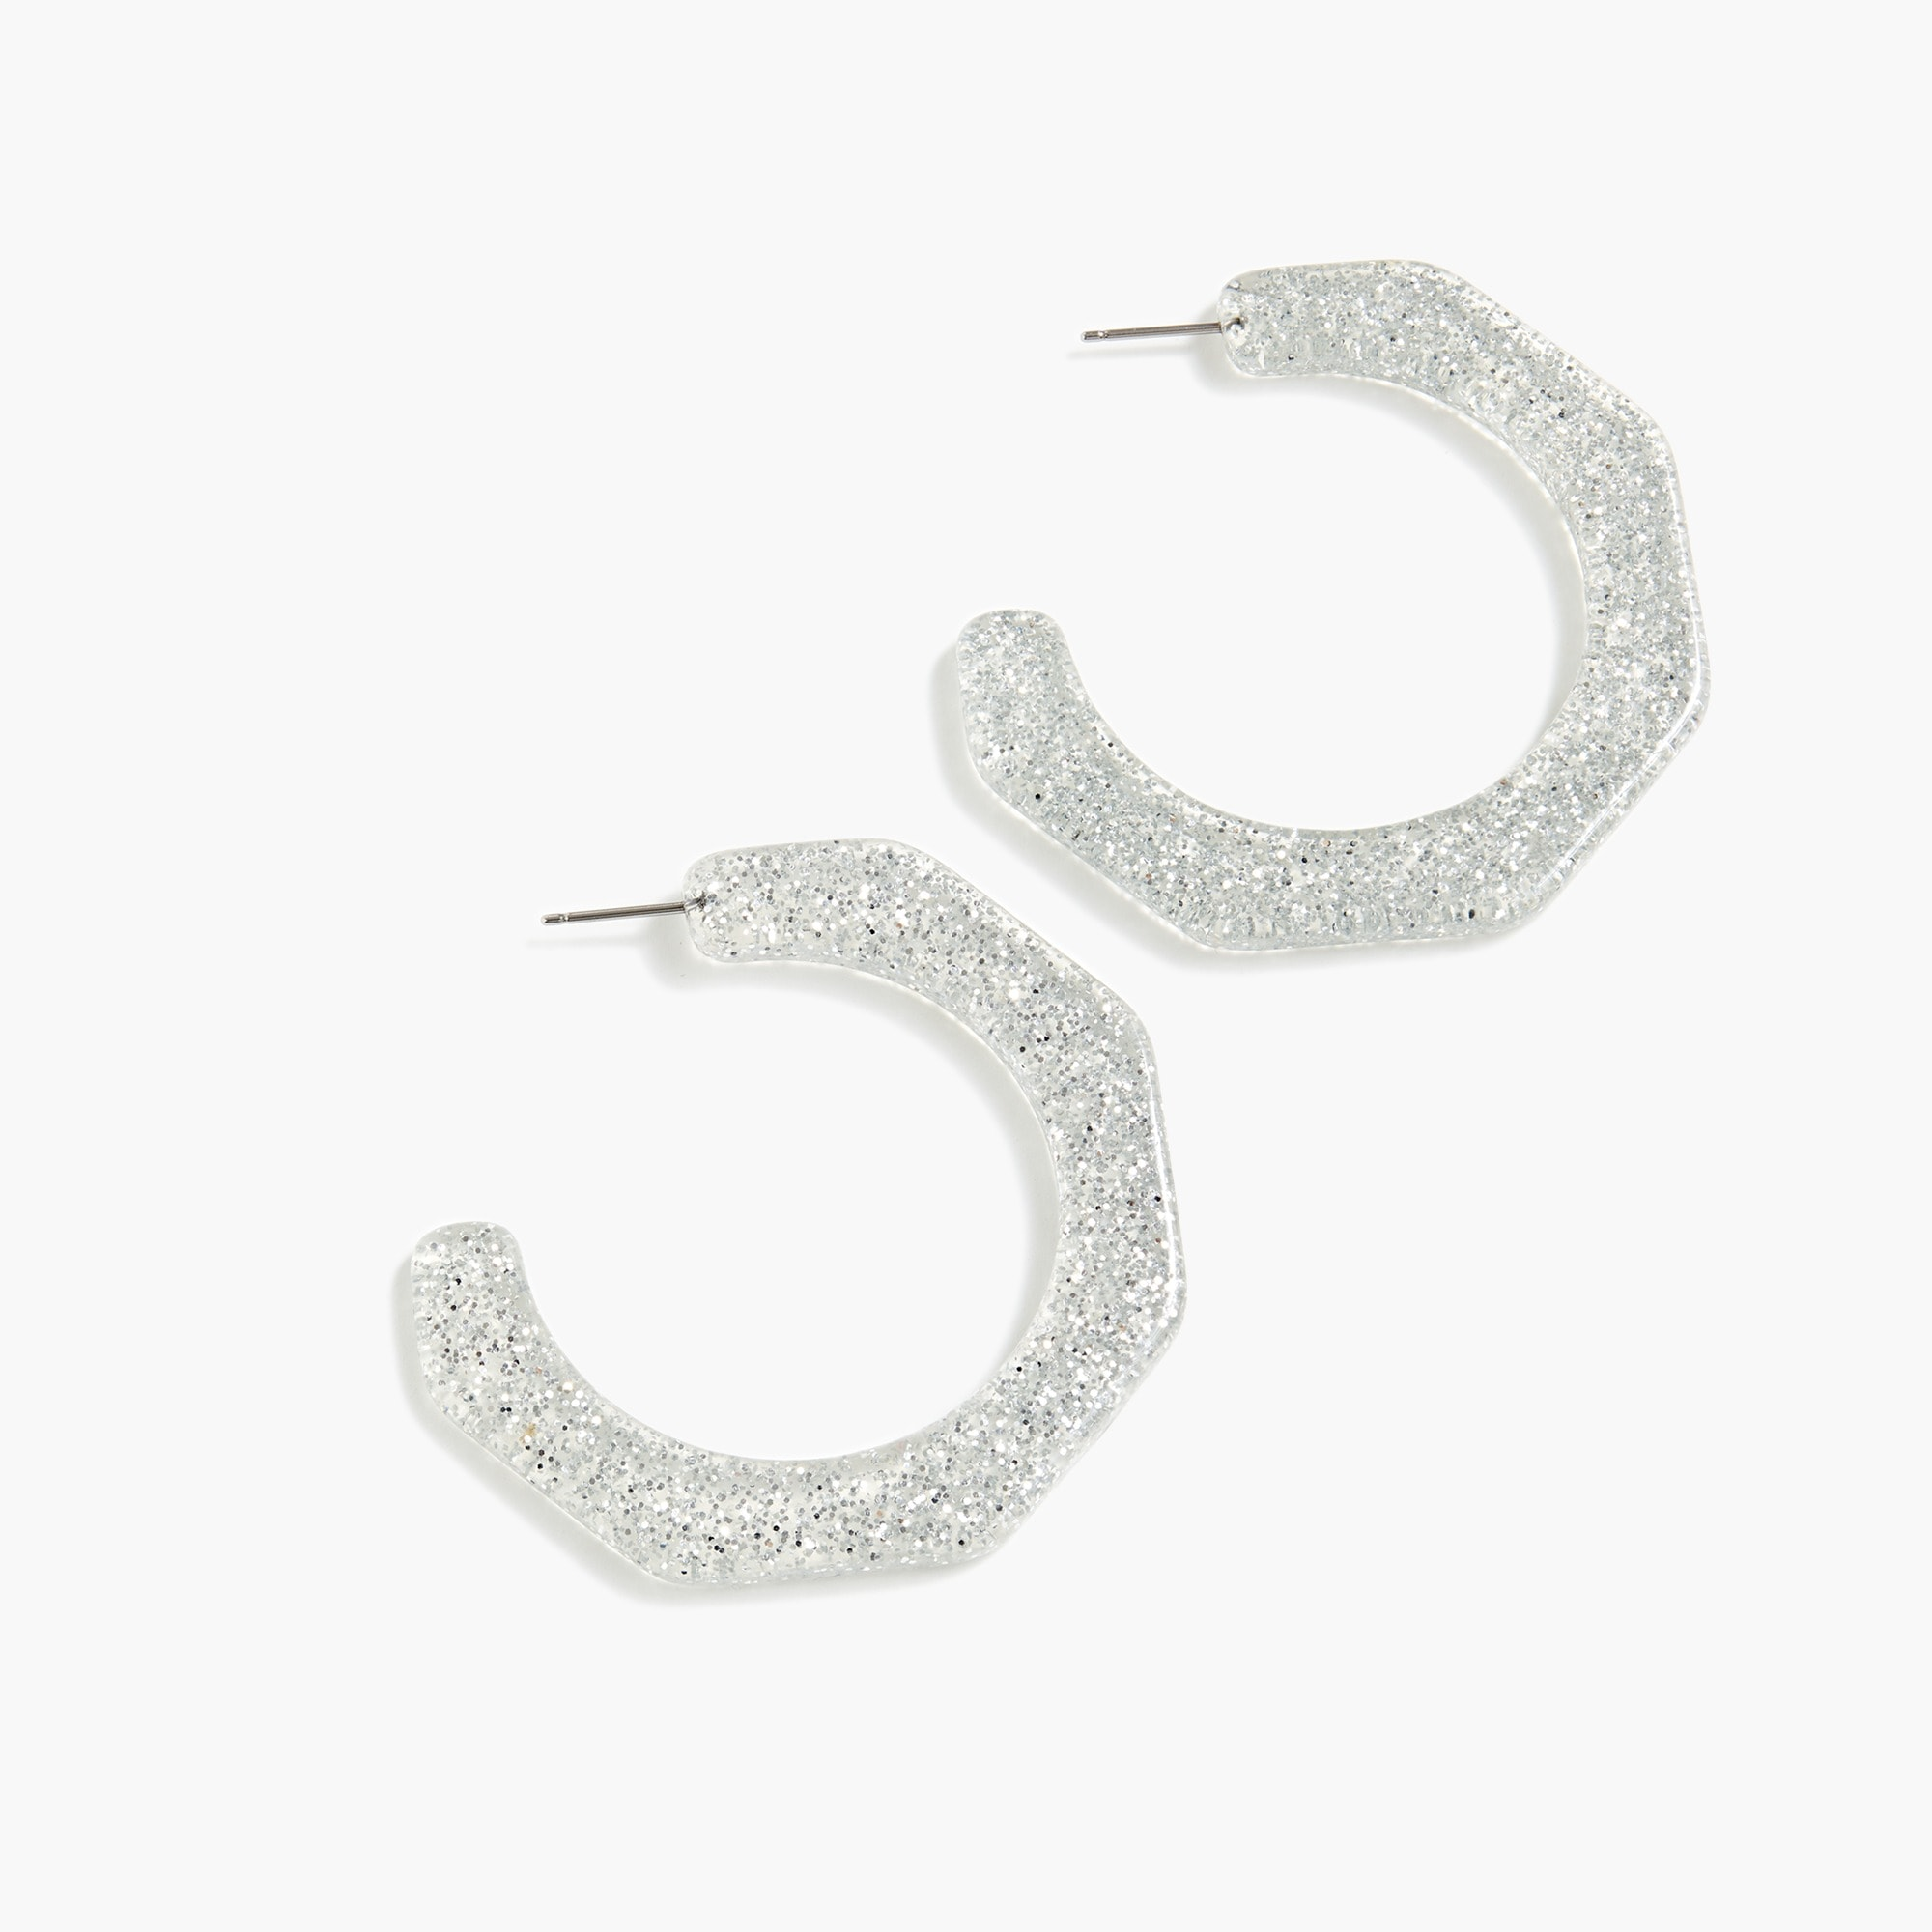 Resin angled-hoop earrings women new arrivals c